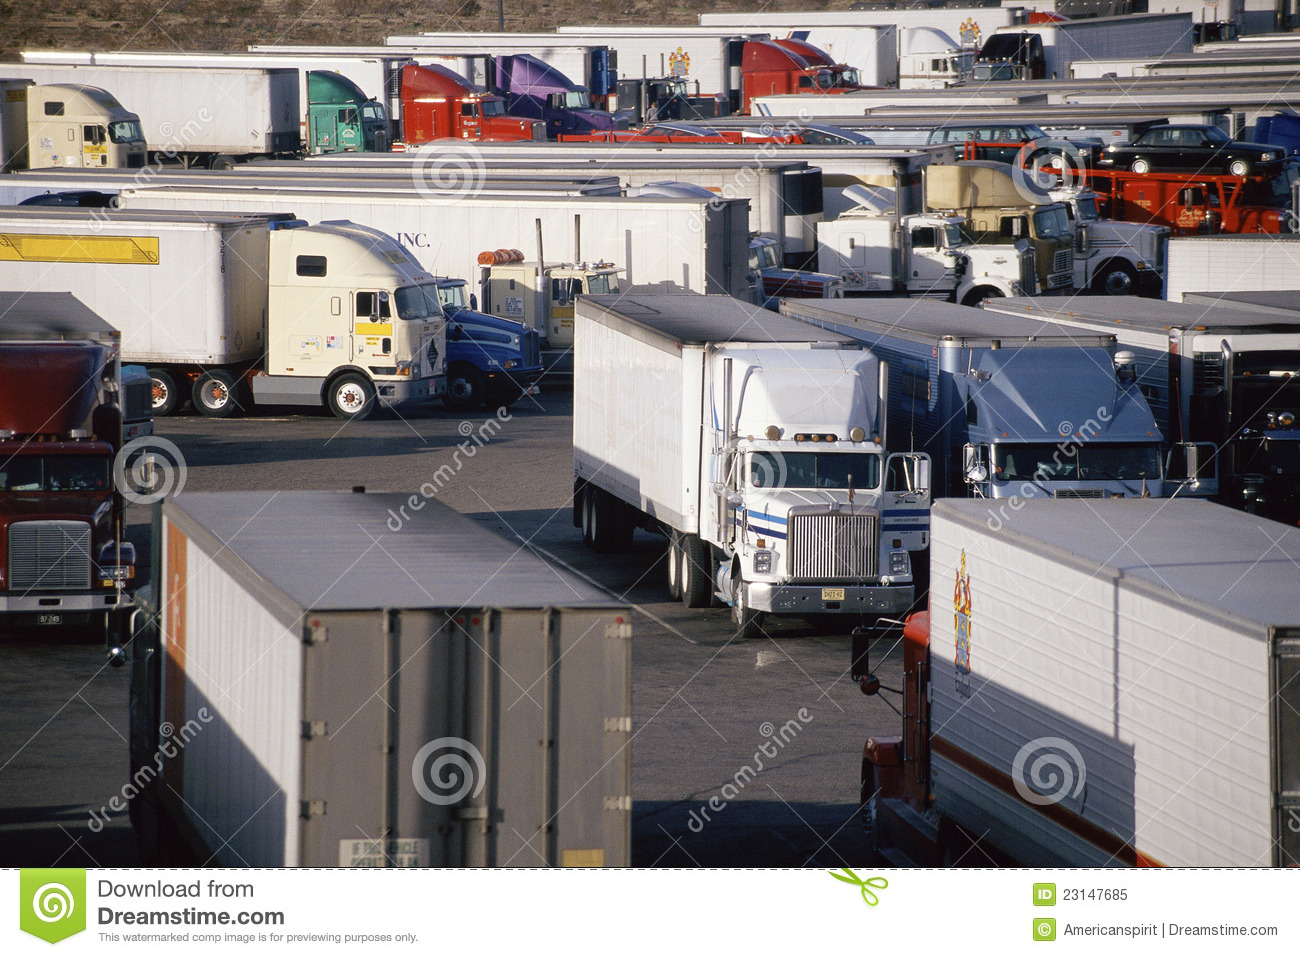 Long Haul Trucking >> Parked Trucks At Truck Stop Editorial Image - Image: 23147685